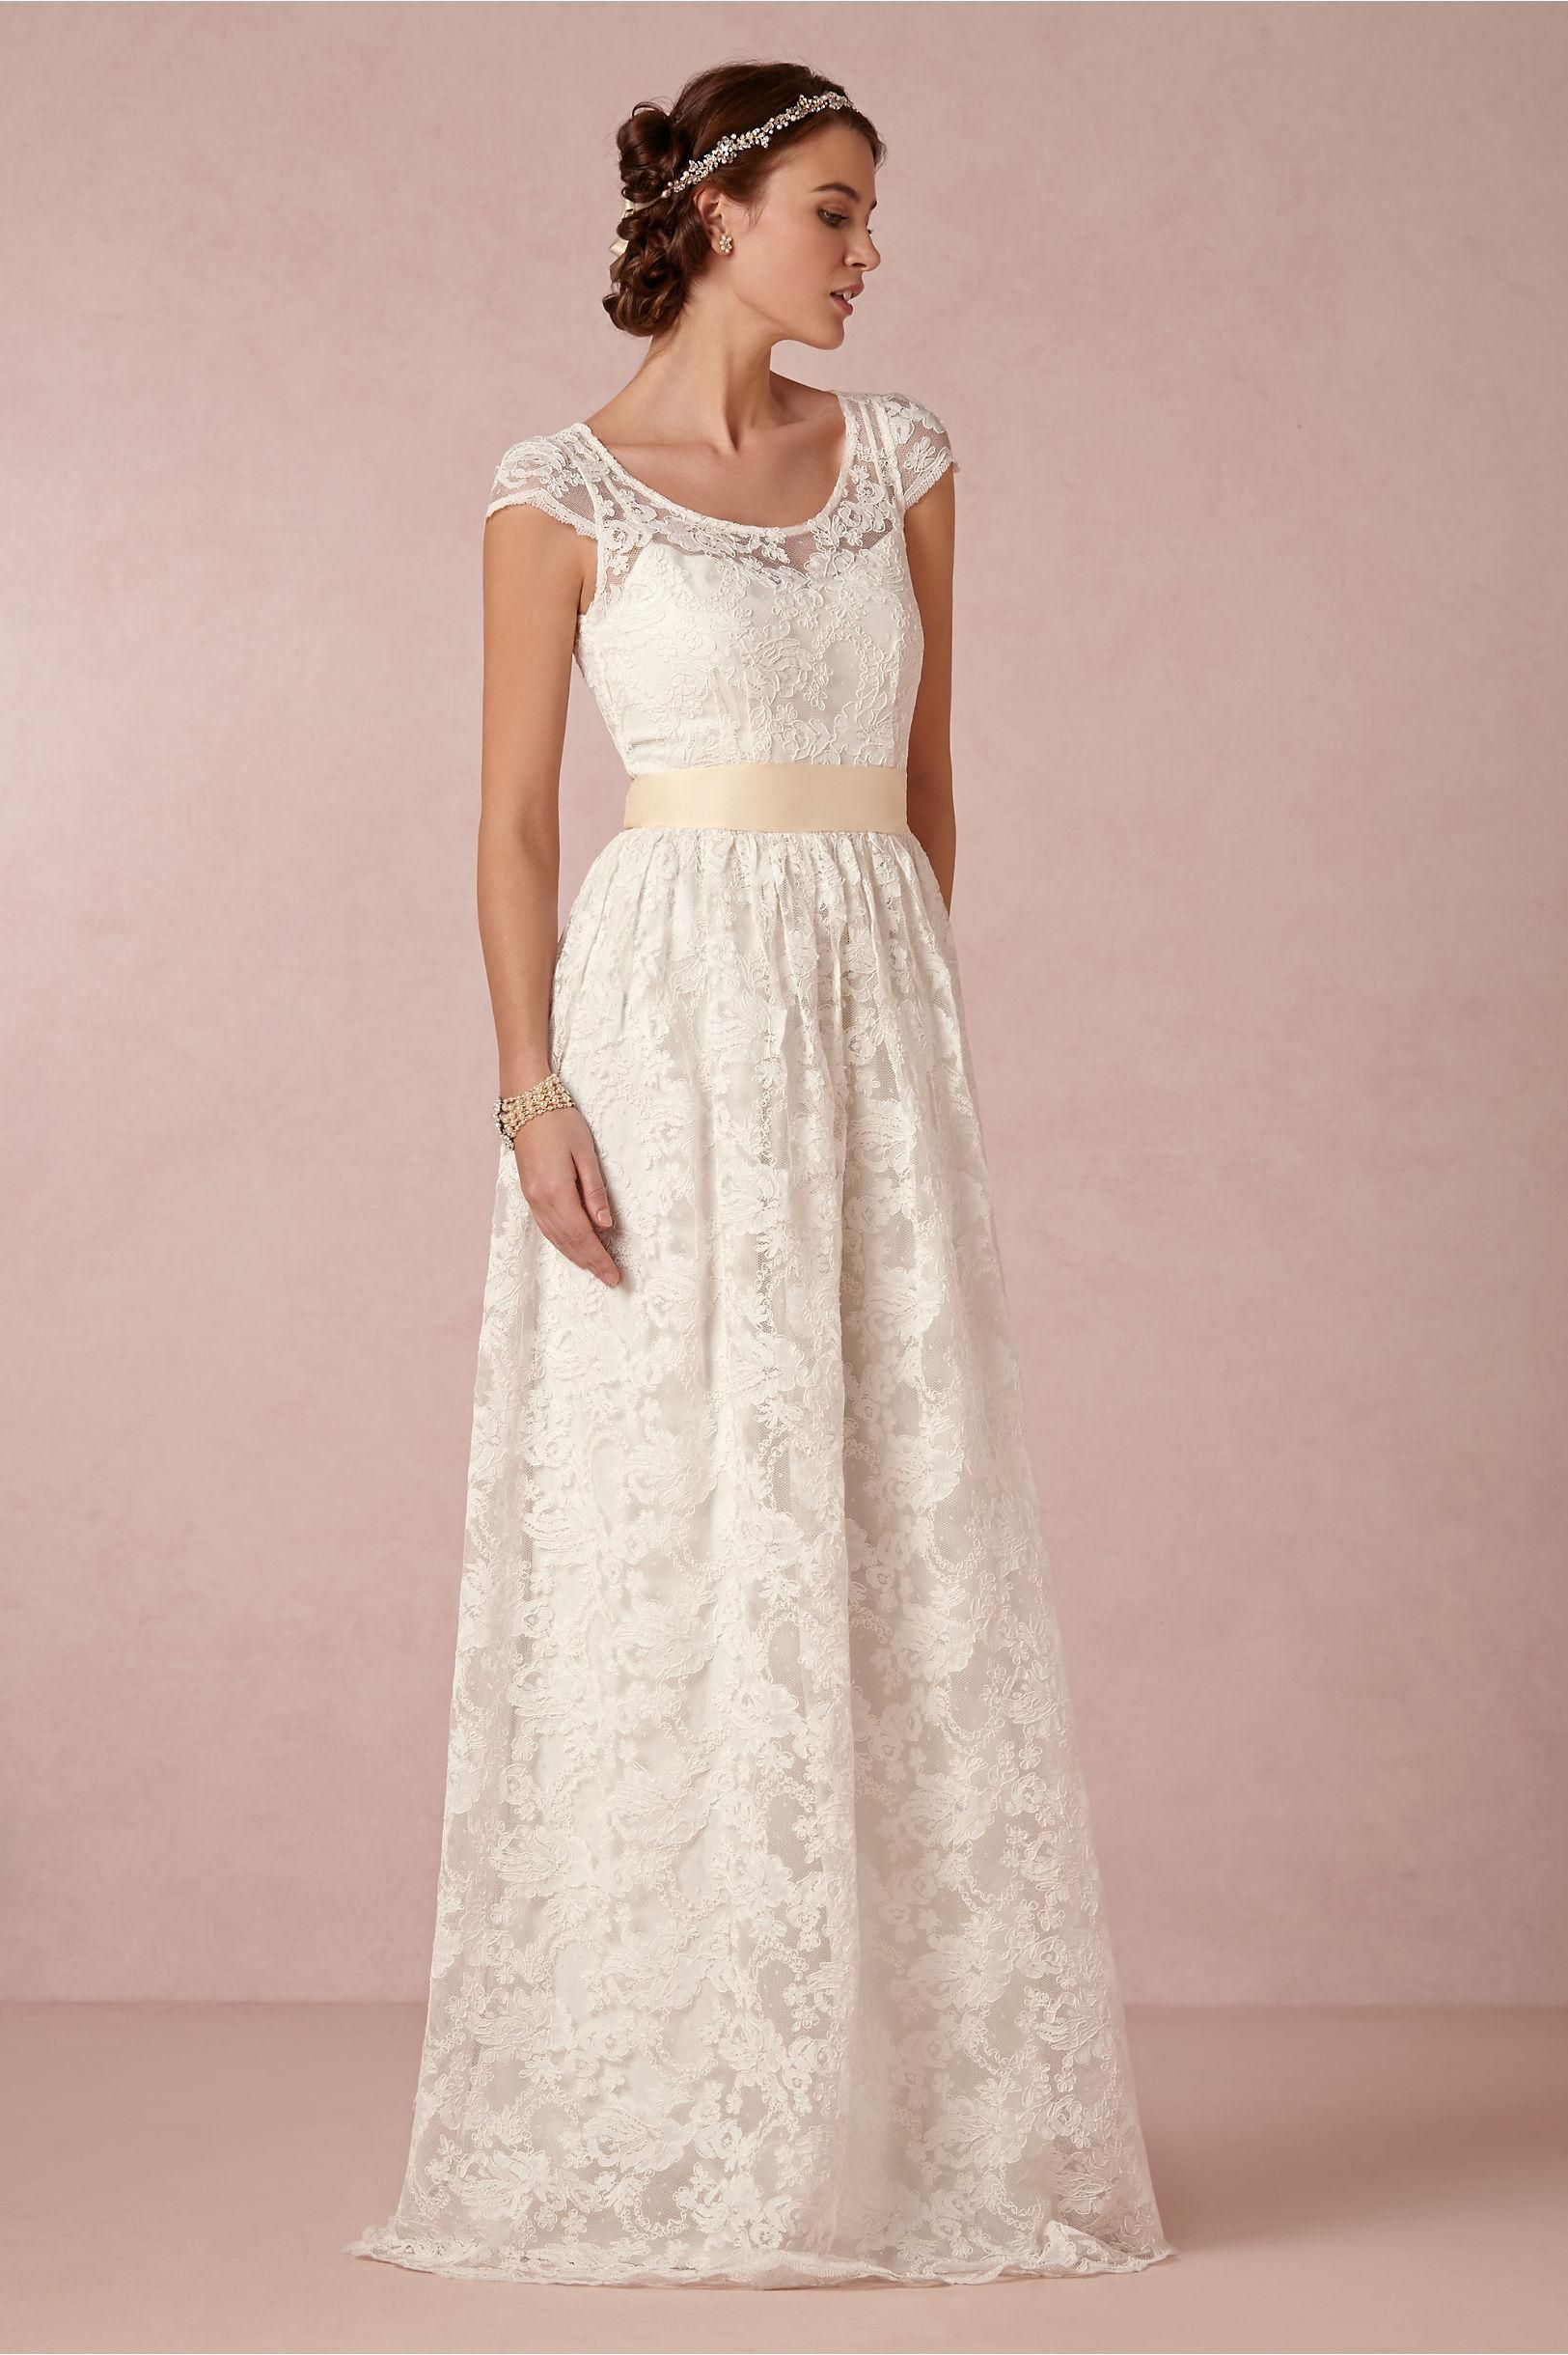 Ellie Gown from Leanne Marshall for BHLDN | vestidos | Pinterest ...